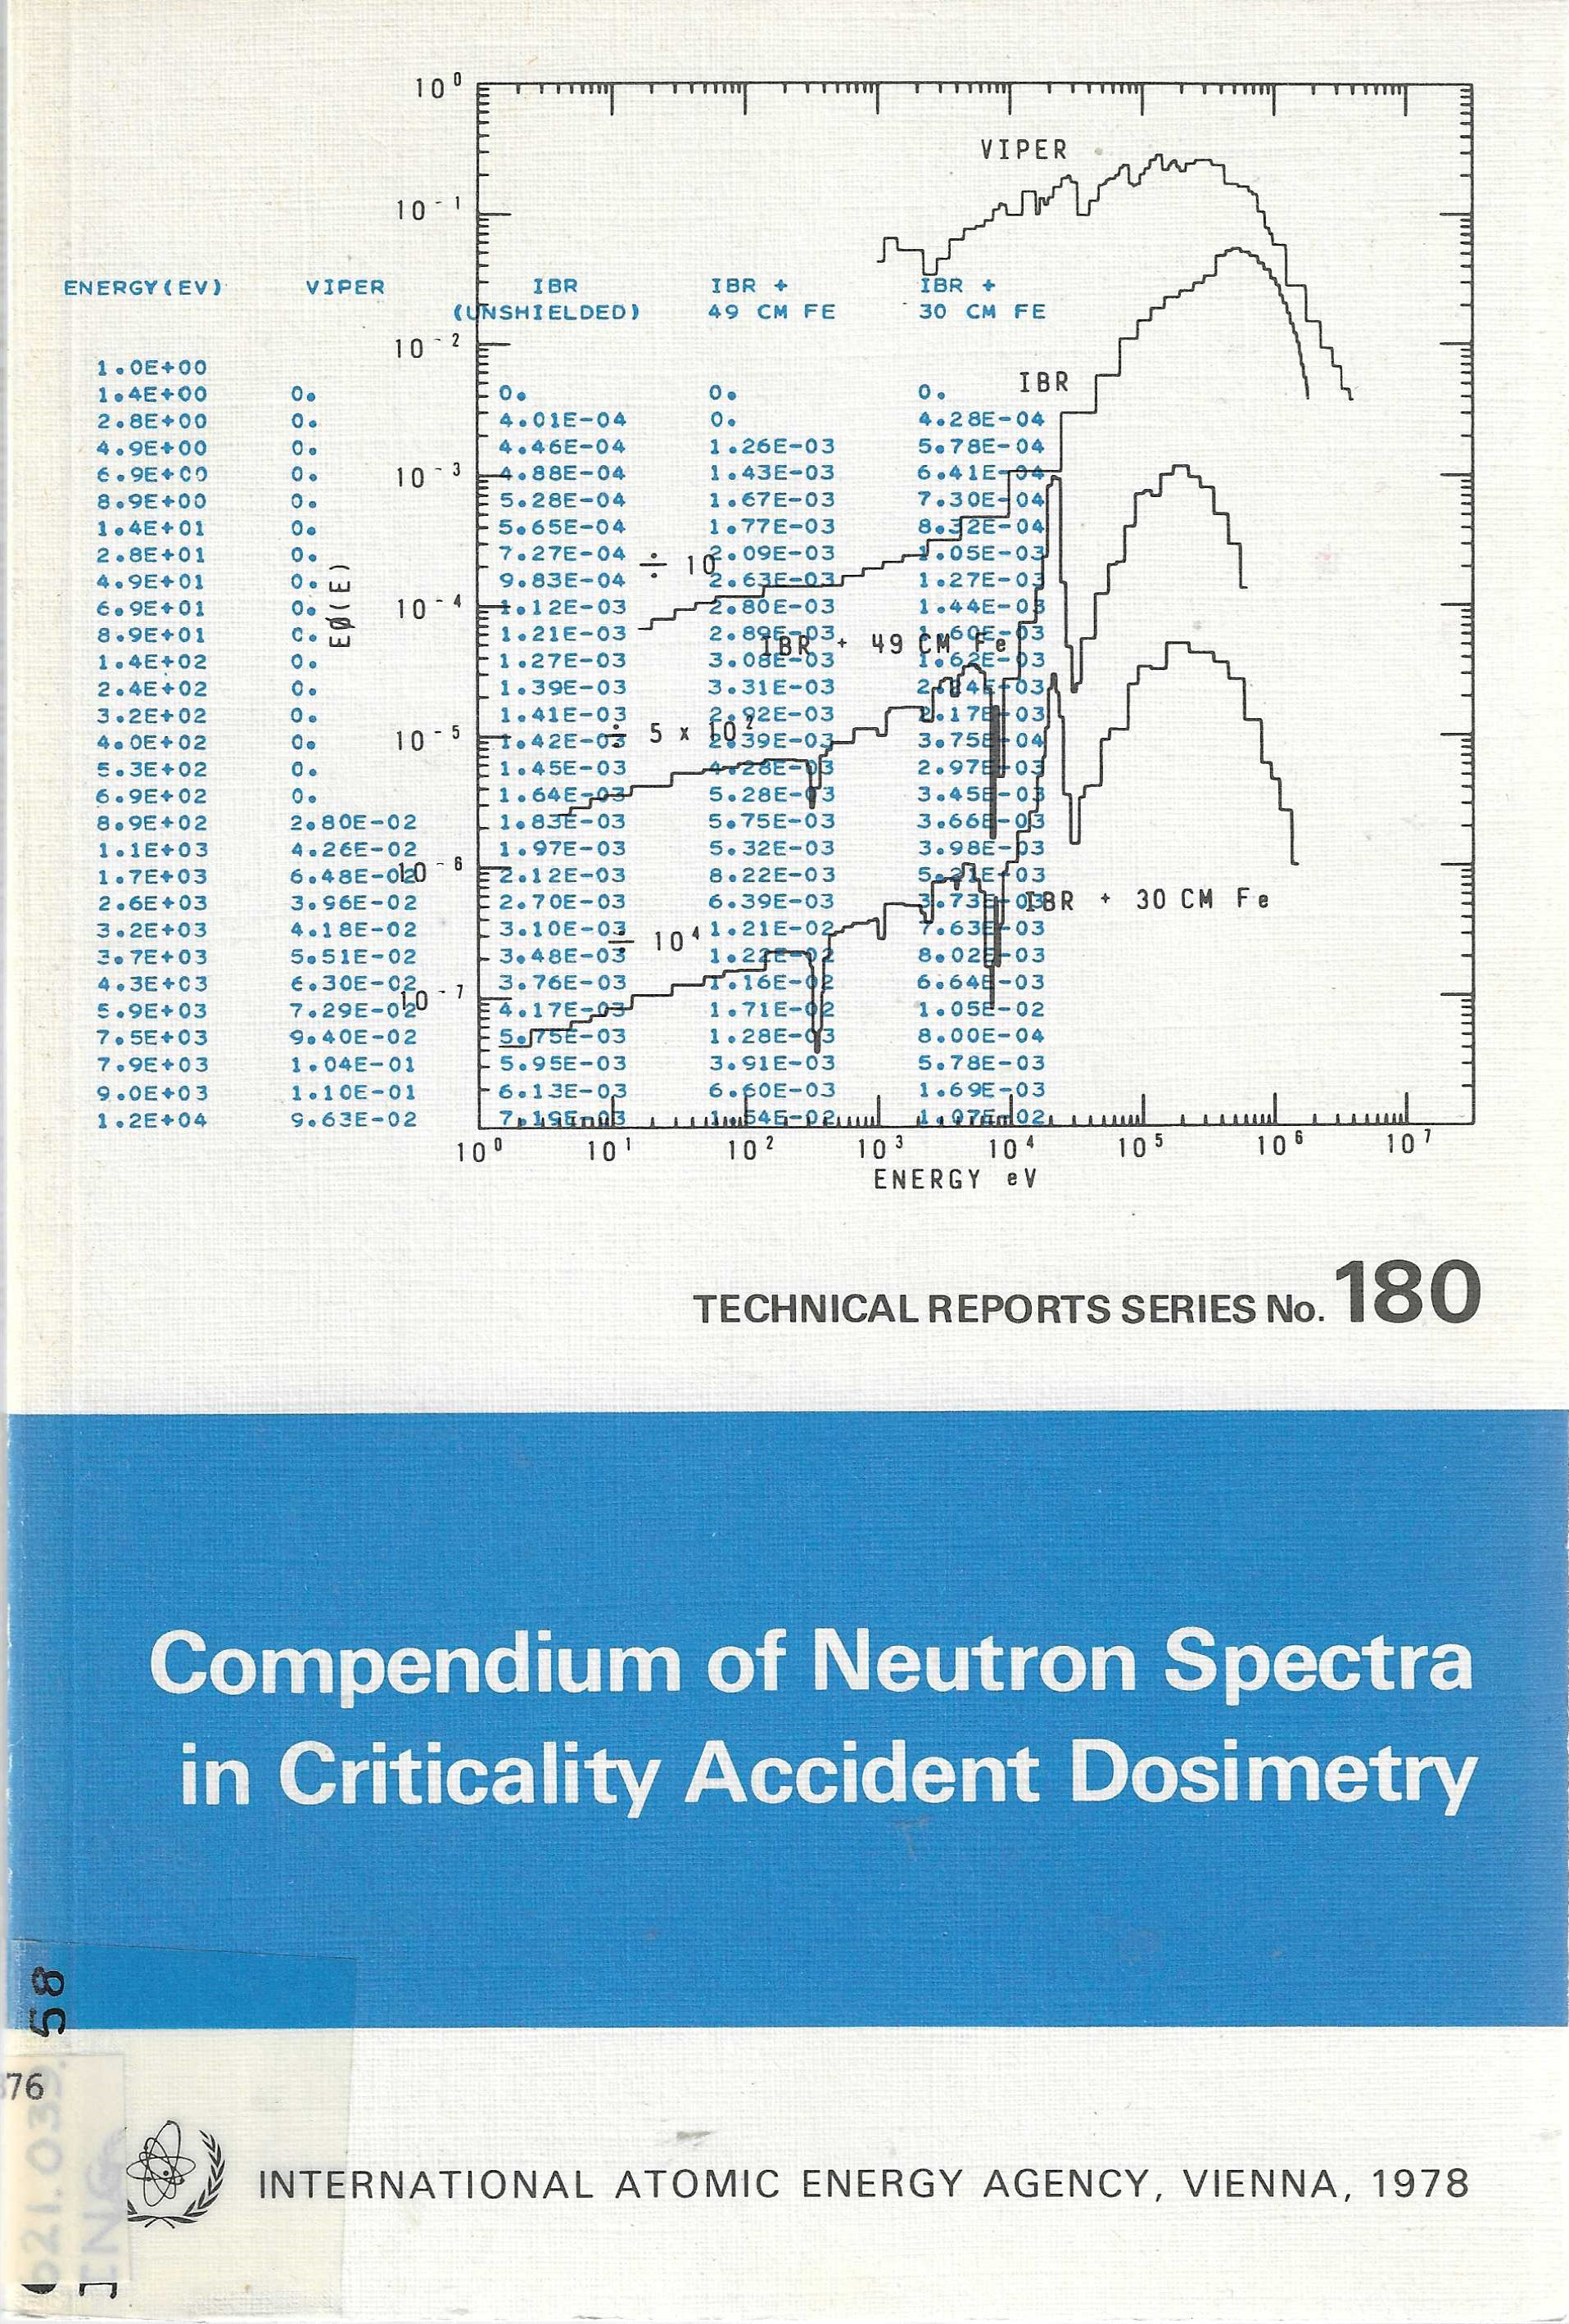 Image for Compendium of Neutron Spectra in Criticality Accident Dosimetry. (TECHNICAL REPORTS SERIES No. 180 INTERNATIONAL ATOMIC ENERGY AGENCY)